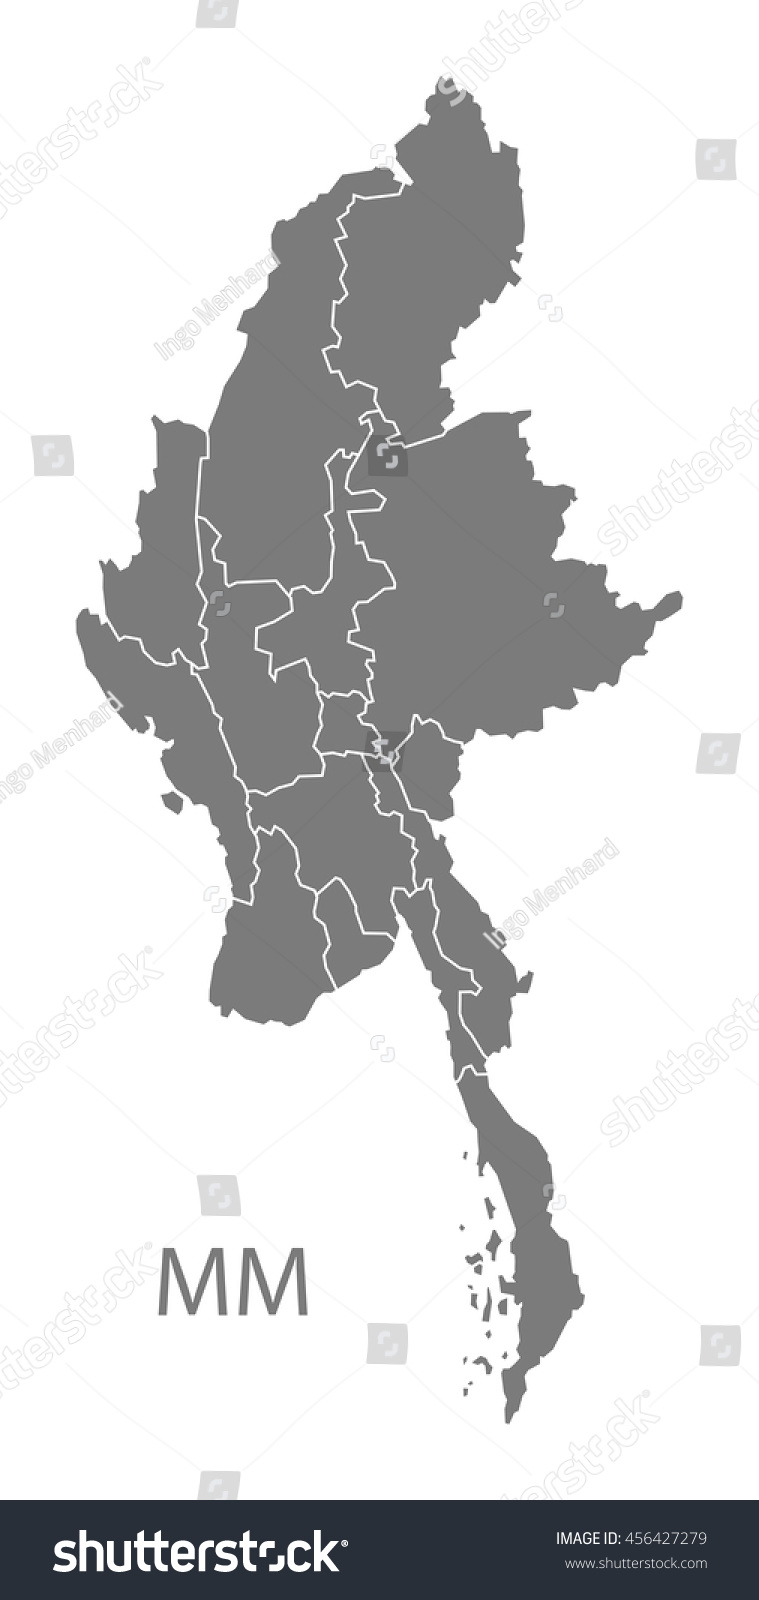 Vector States Map.Myanmar States Map Grey Stock Vector Royalty Free 456427279